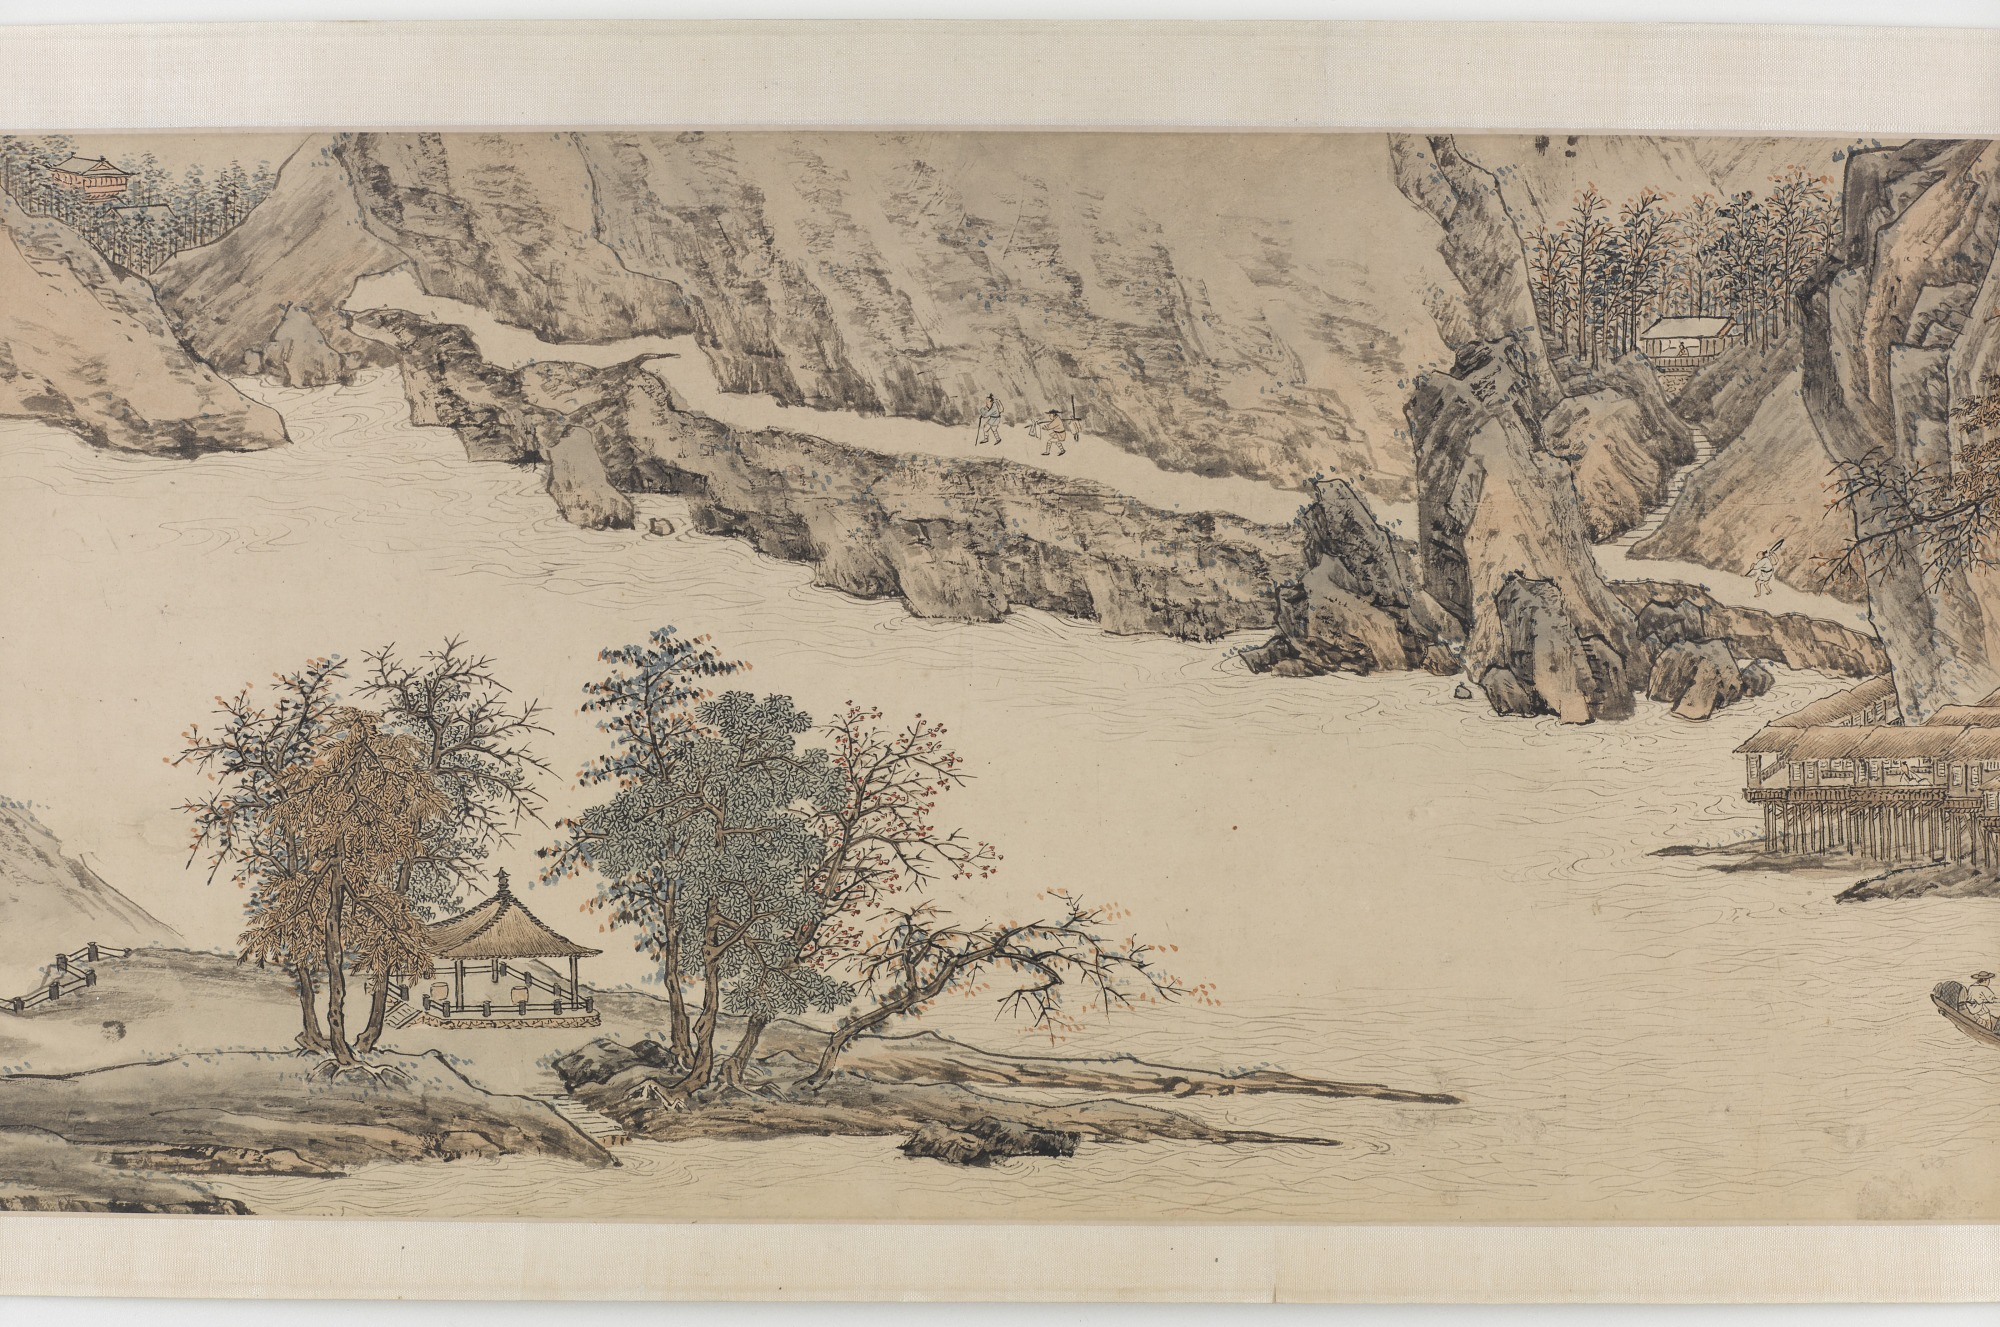 section 11: Landscape in the Style of Li Tang